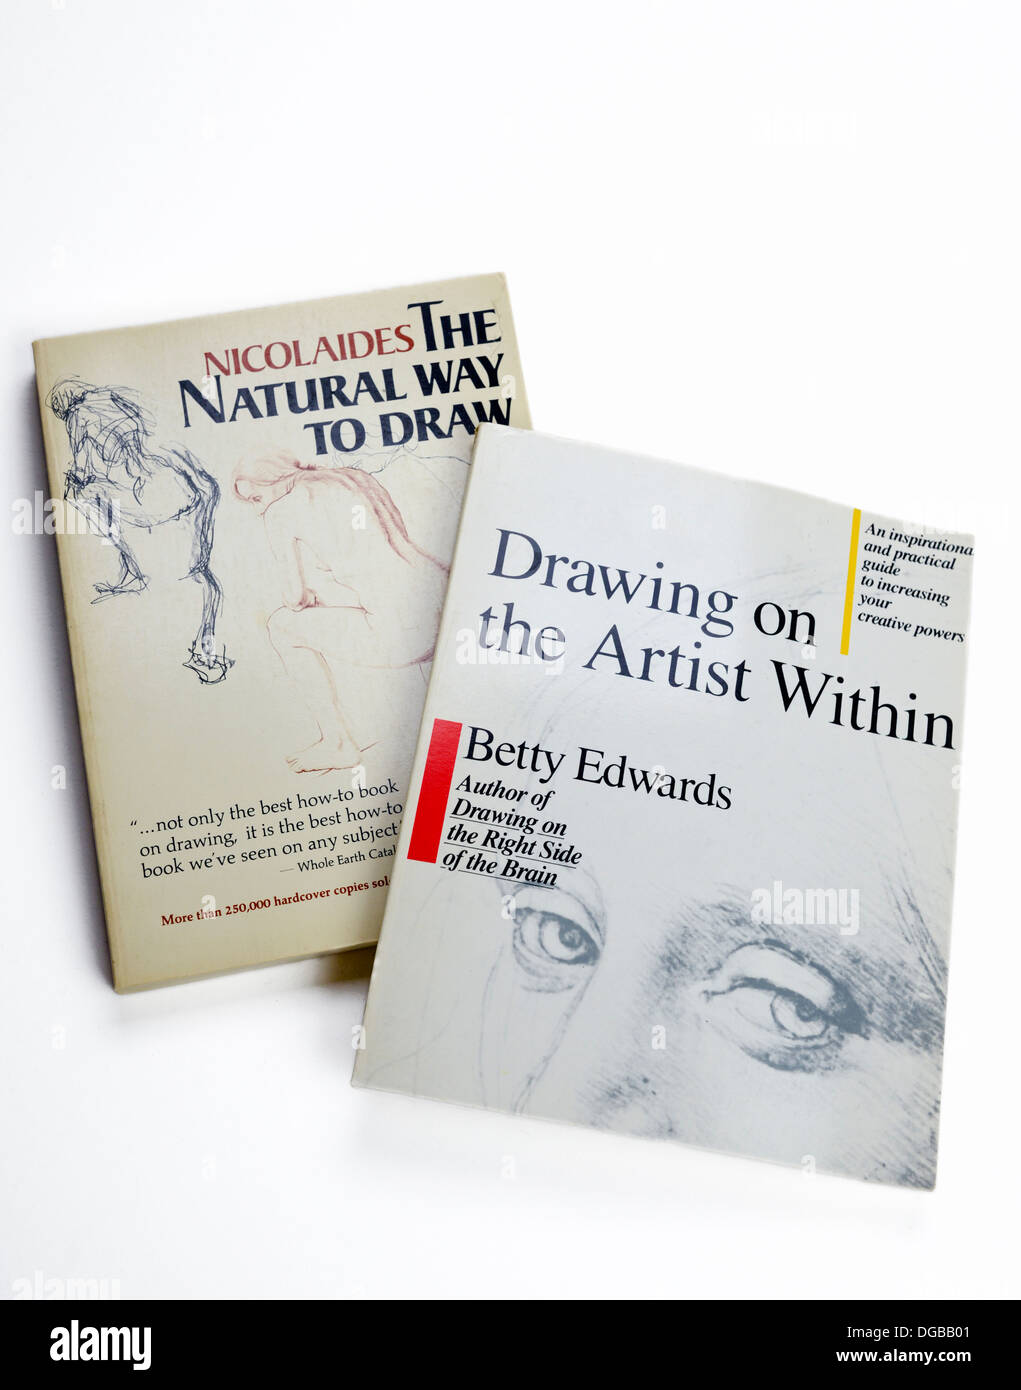 Stock Photo  The Natural Way To Draw By Kimon Nicolaides & Drawing On The  Artist Within By Betty Edwards, Two Important Books In Art Study